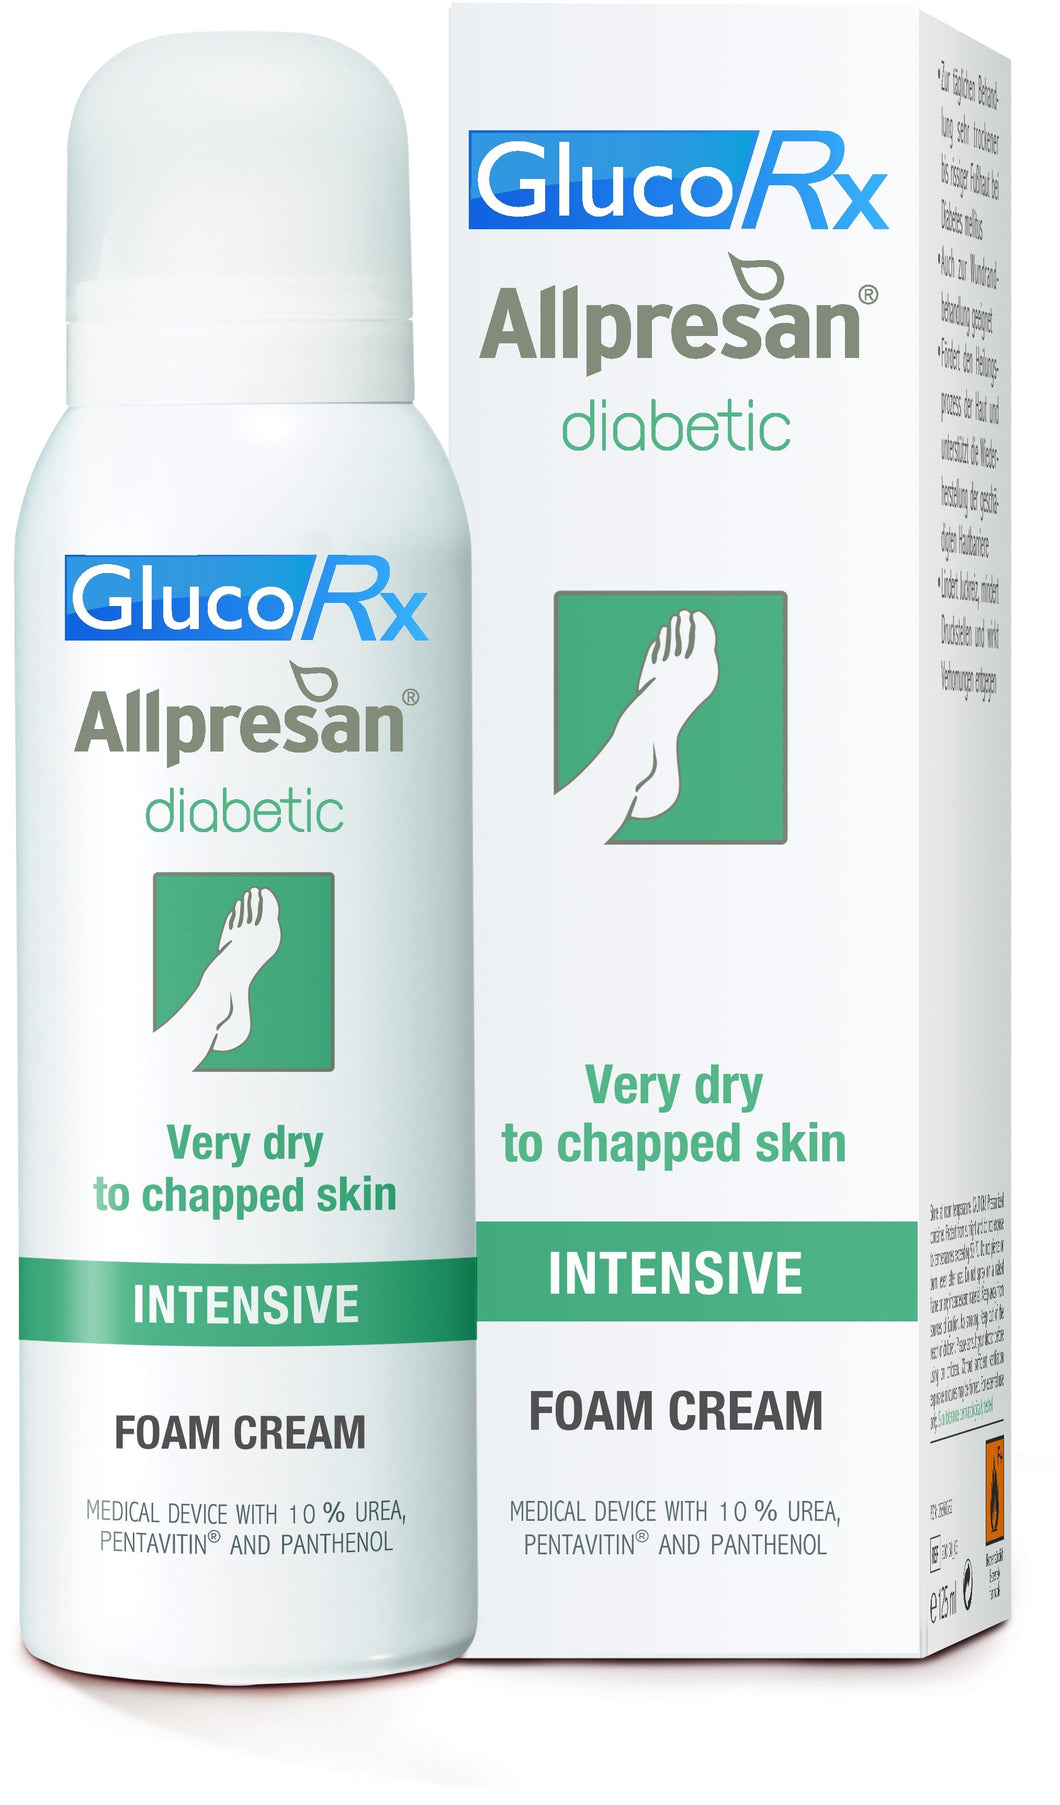 GlucoRx ALLPRESAN® DIABETIC FOAM CREAM INTENSIVE 10% Urea Dry and sensitive skin 300ml